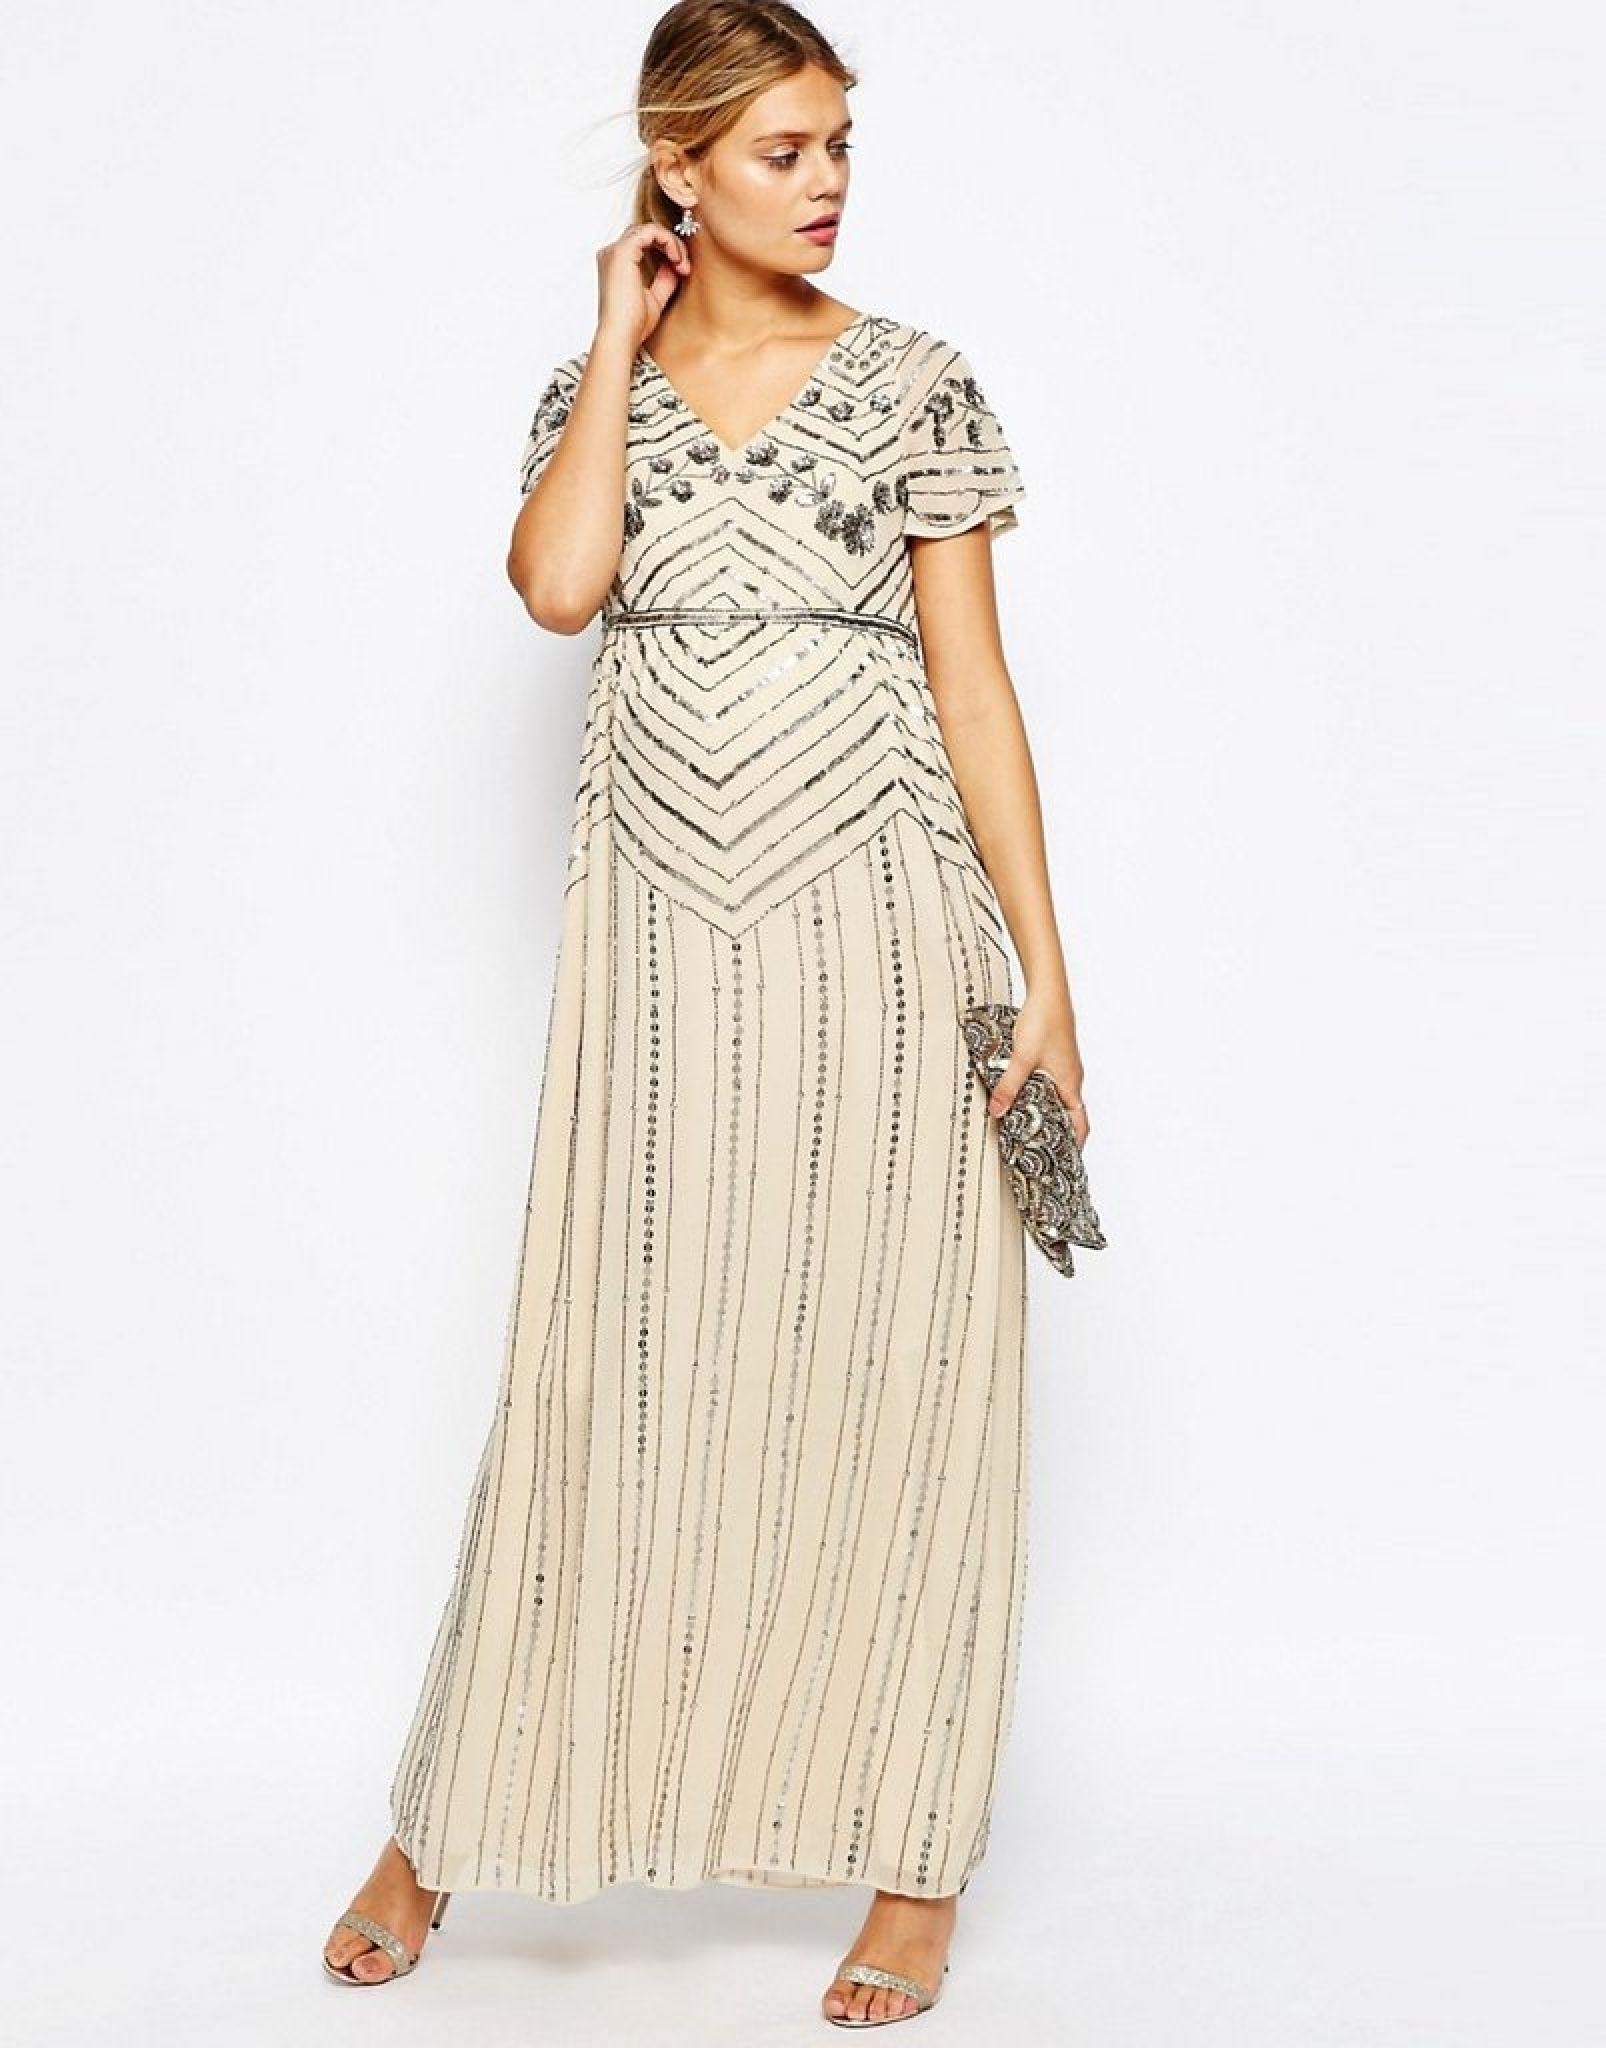 maternity dress wedding guest  how to dress for a wedding Check